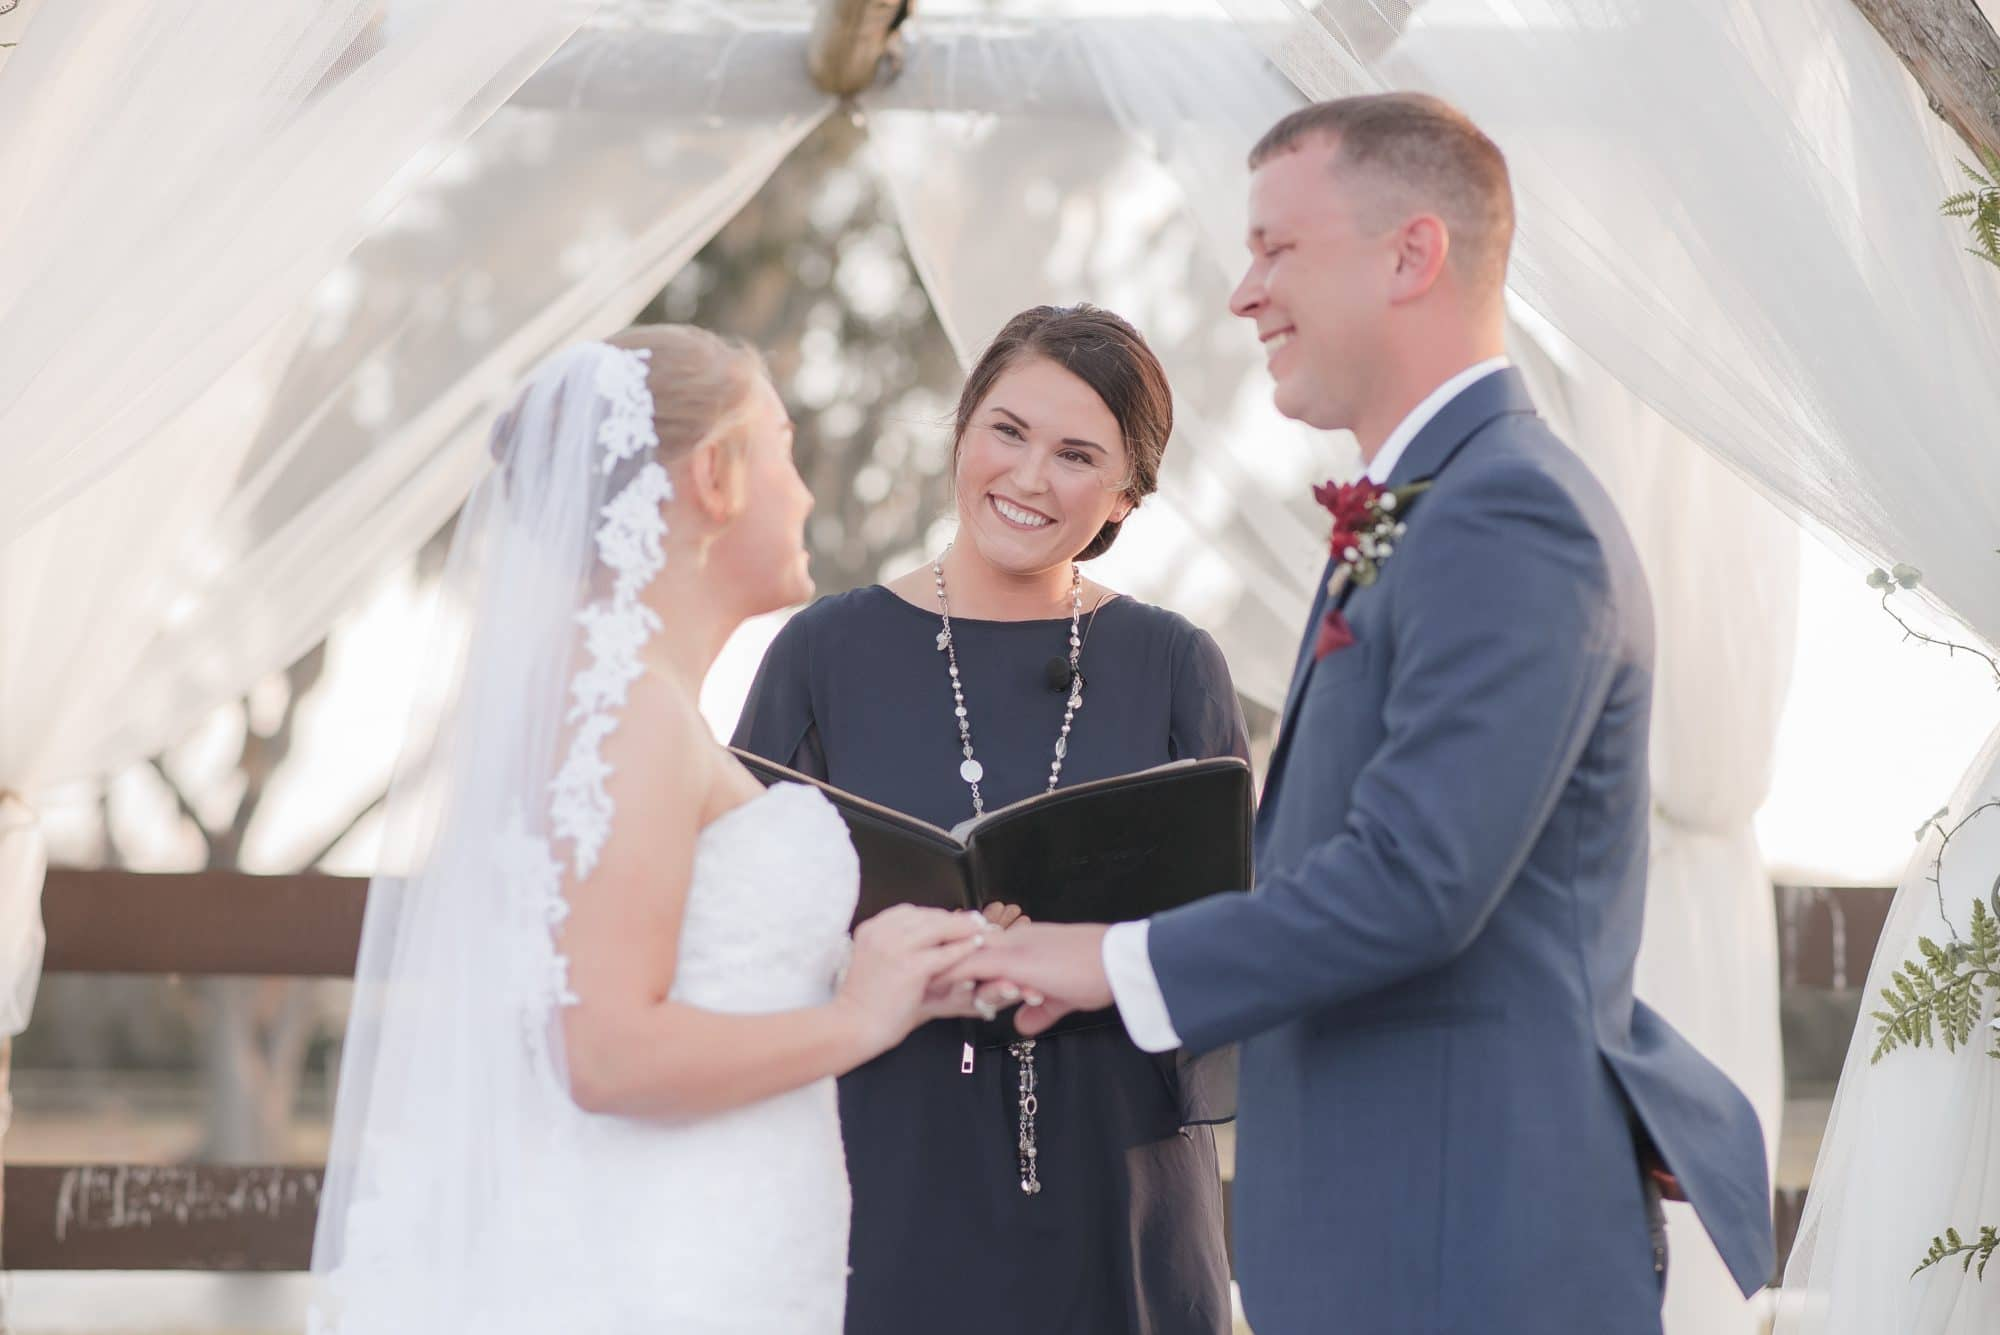 Rustic chic outdoor wedding ceremony for Brittany and Todd